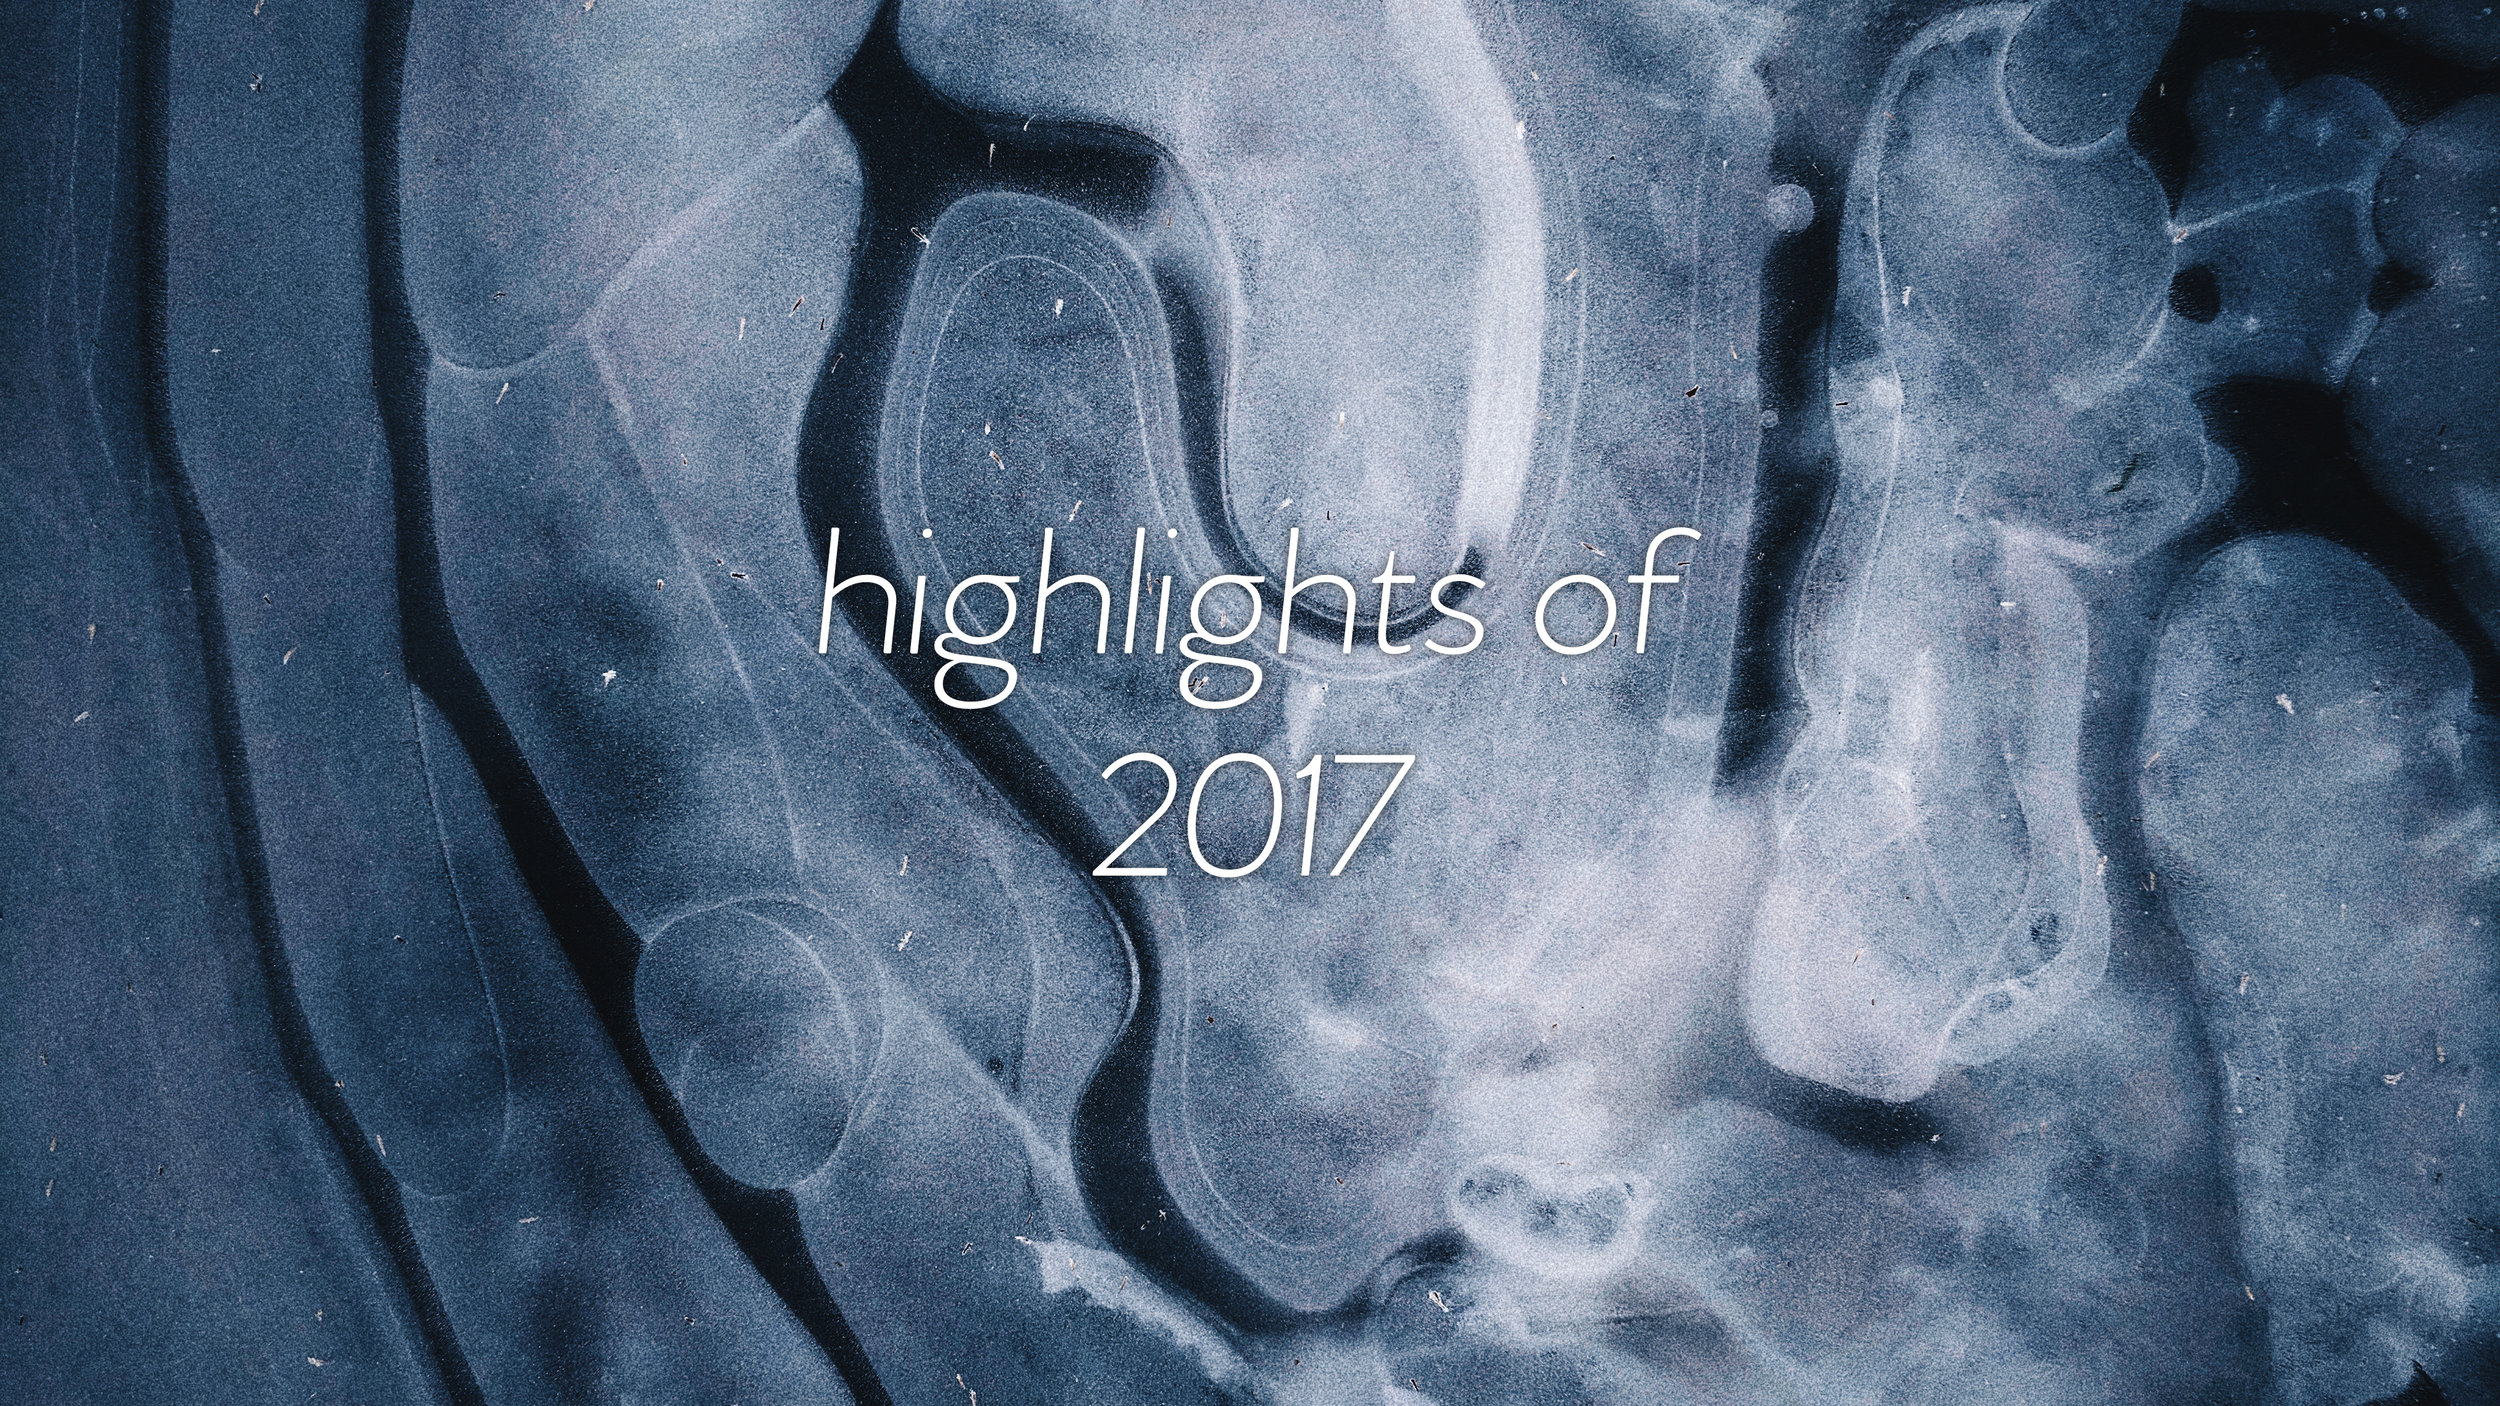 highlights2017.jpg